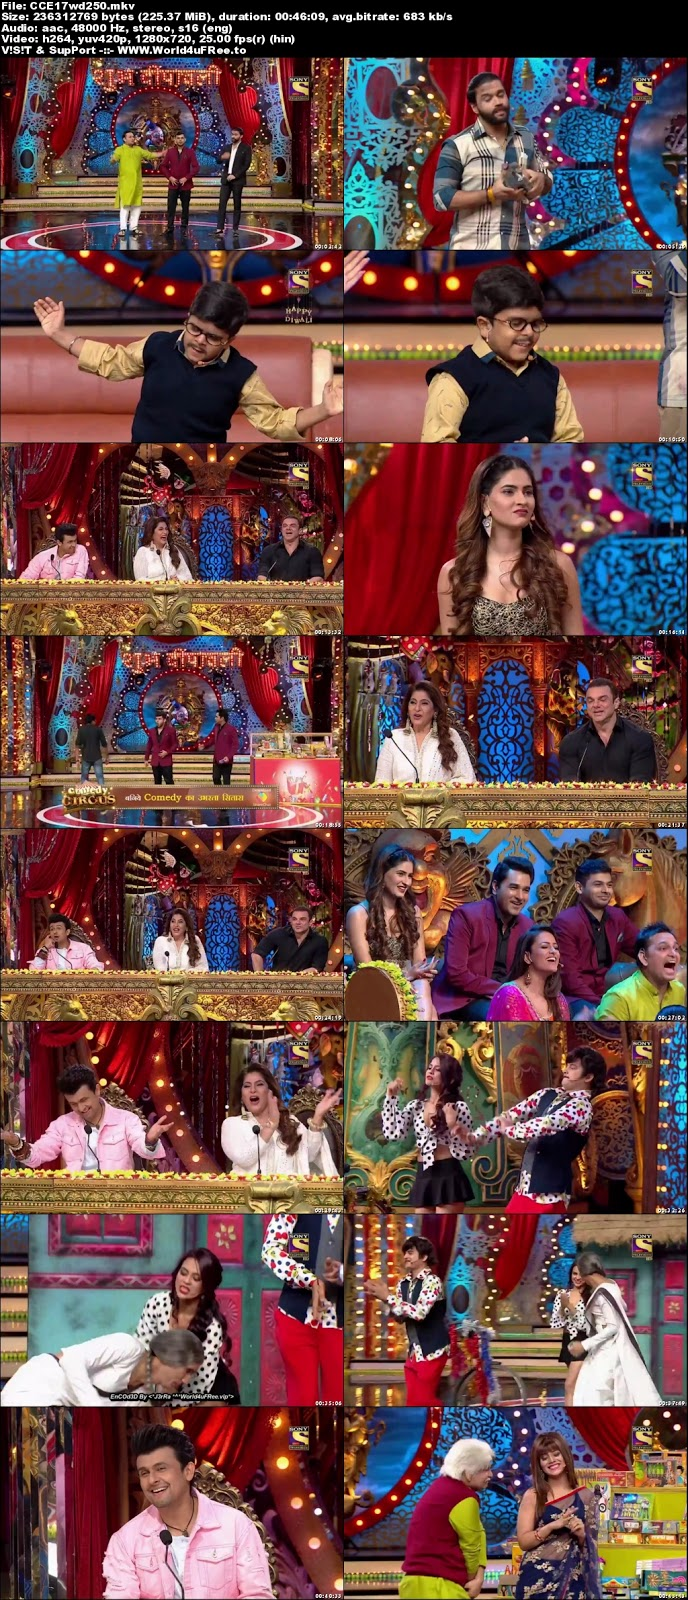 Comedy Circus 2018 Episode 17 720p WEBRip 250mb x264 world4ufree.vip tv show Comedy Circus 2018 hindi tv show Comedy Circus 2018  Season 1 sony tv show compressed small size free download or watch online at world4ufree.vip